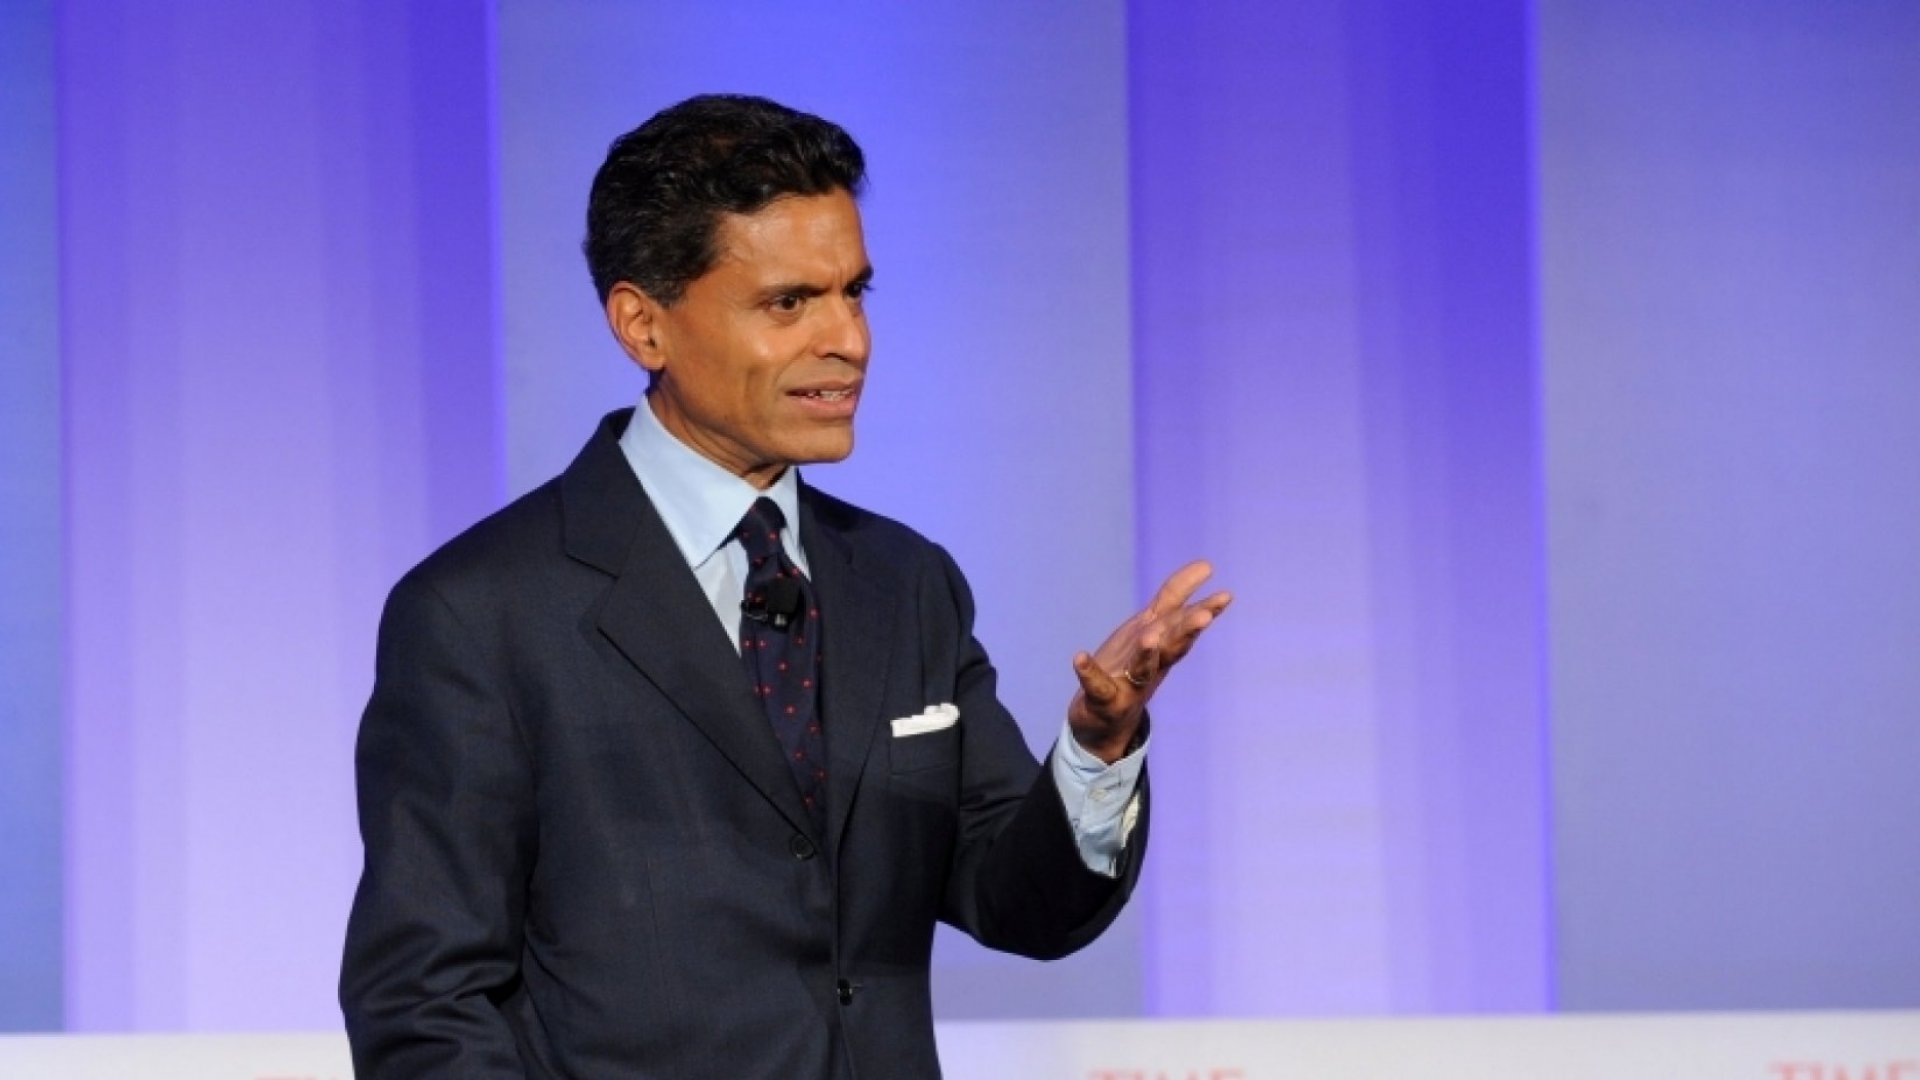 Fareed Zakaria Shares 4 Key Ways to Become an Incredible Leader